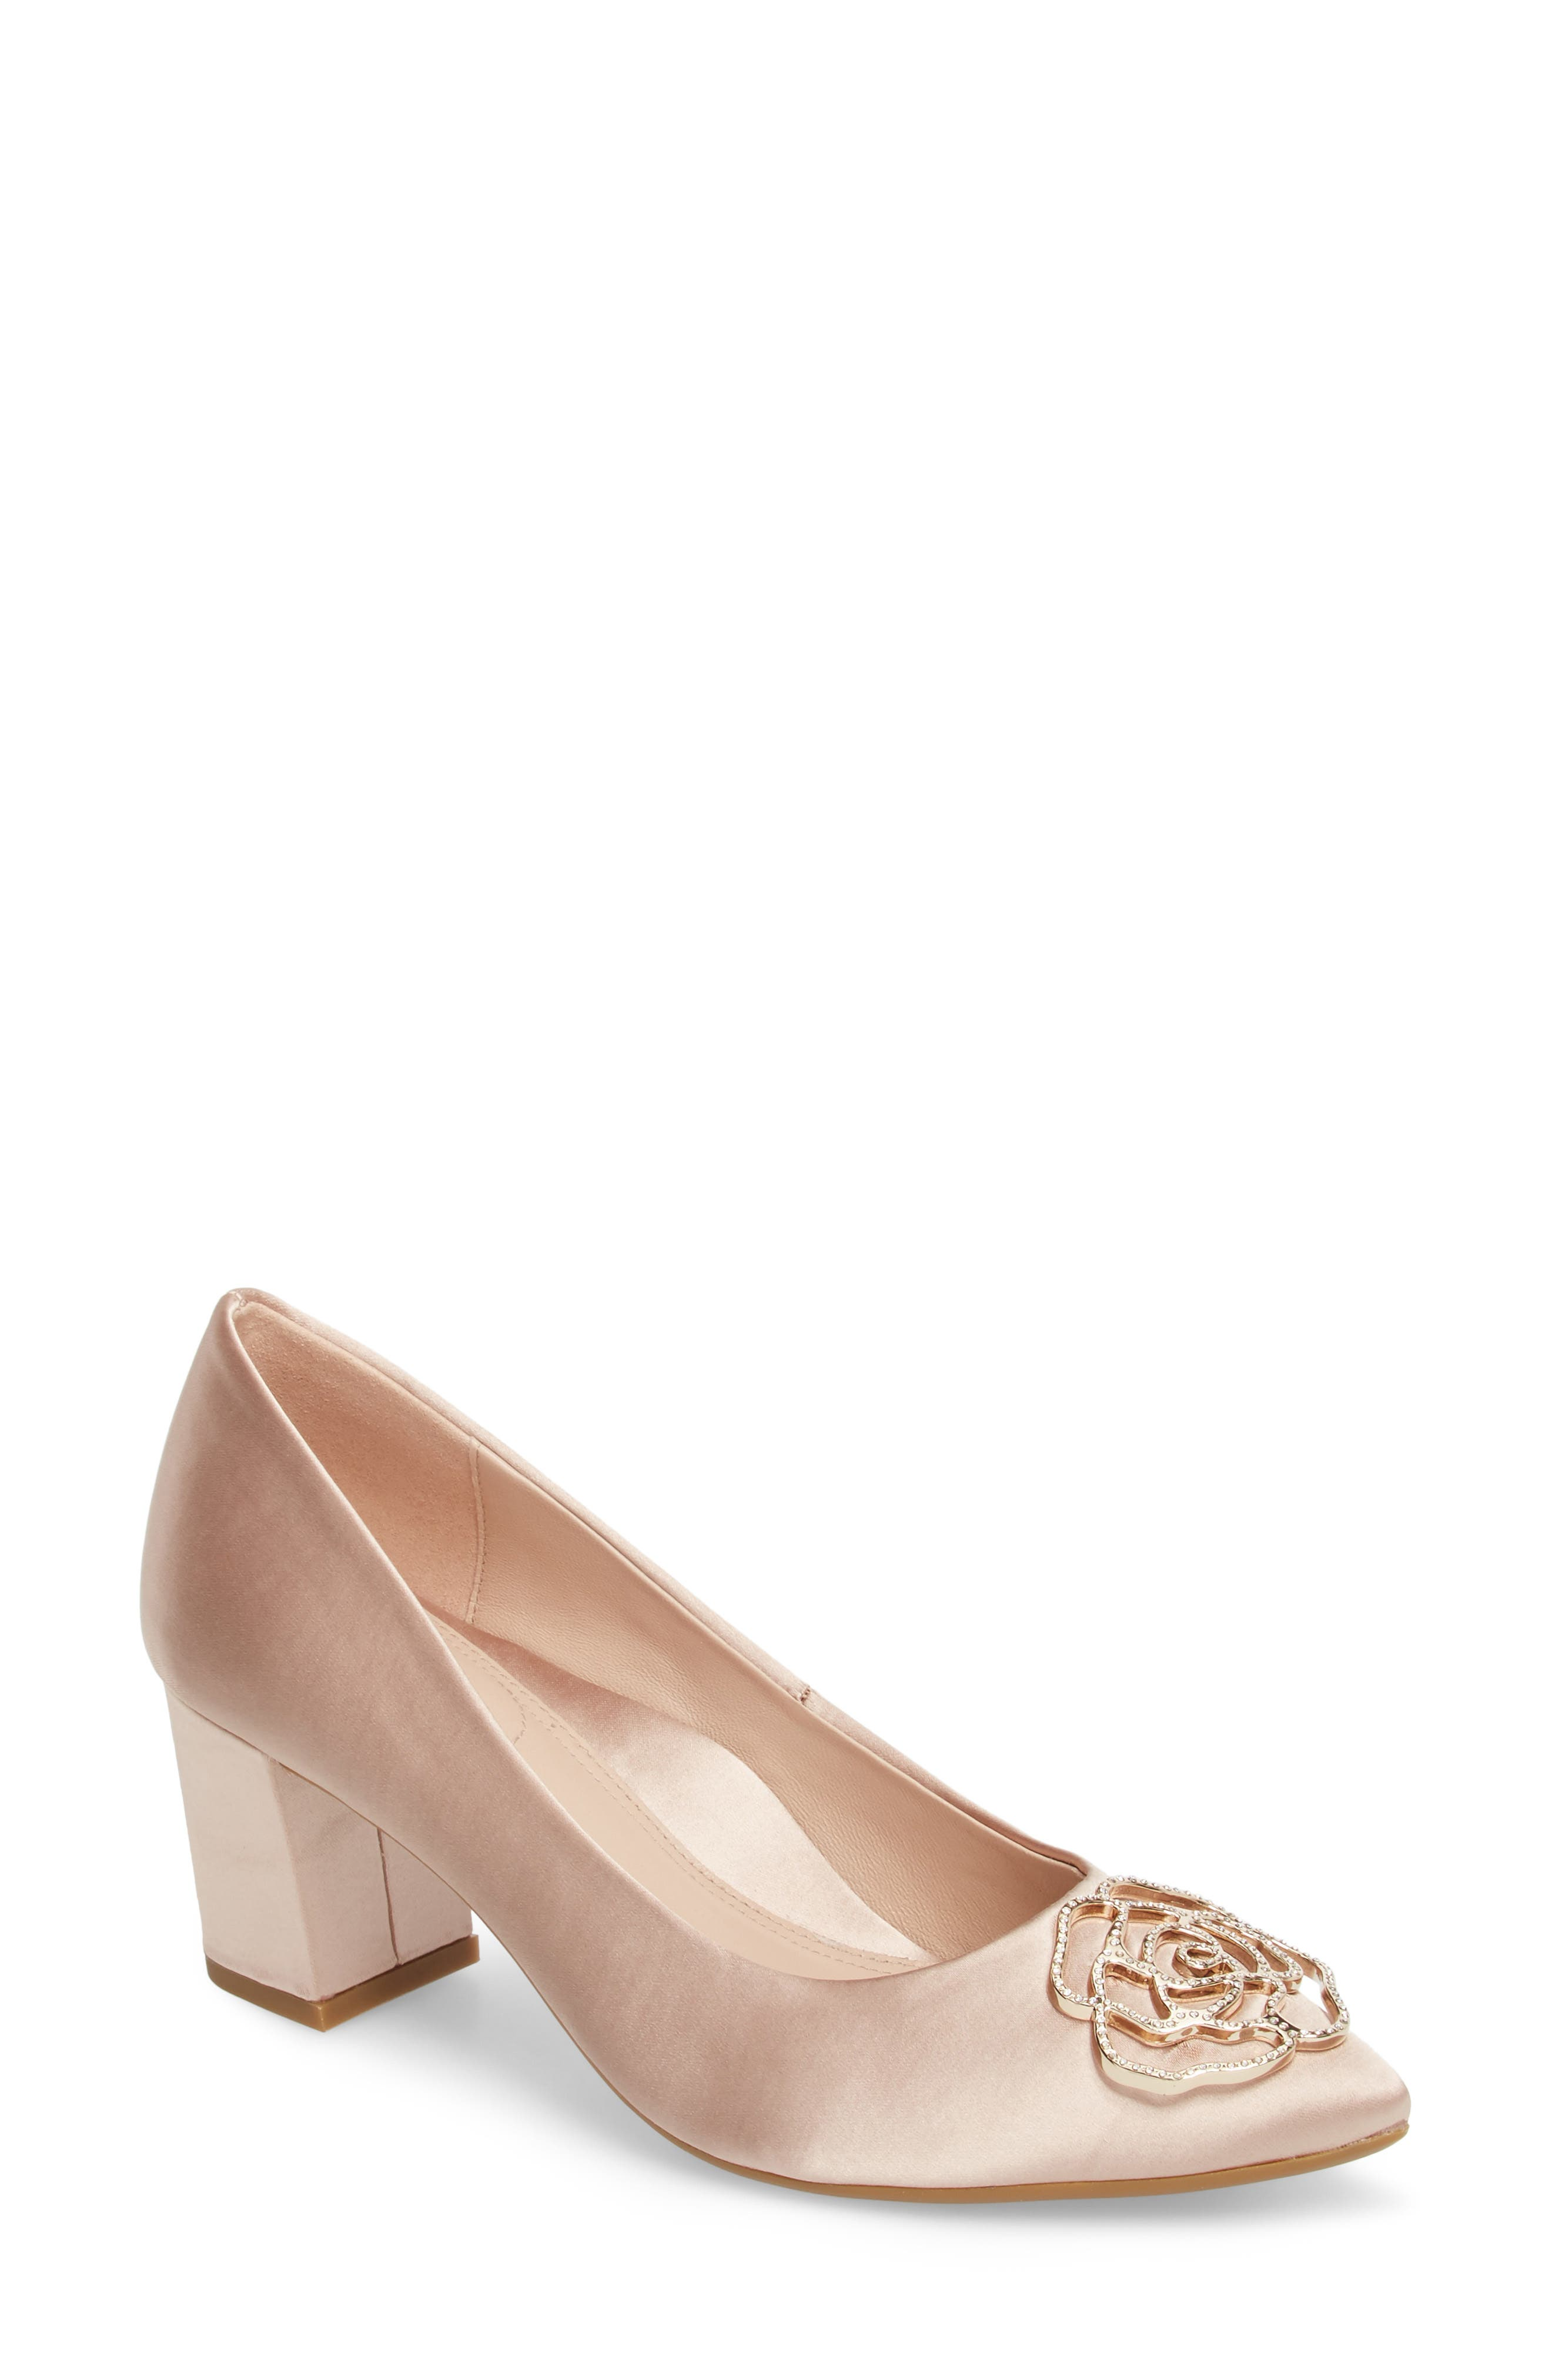 Maci Pump,                             Main thumbnail 1, color,                             Blush Satin Fabric